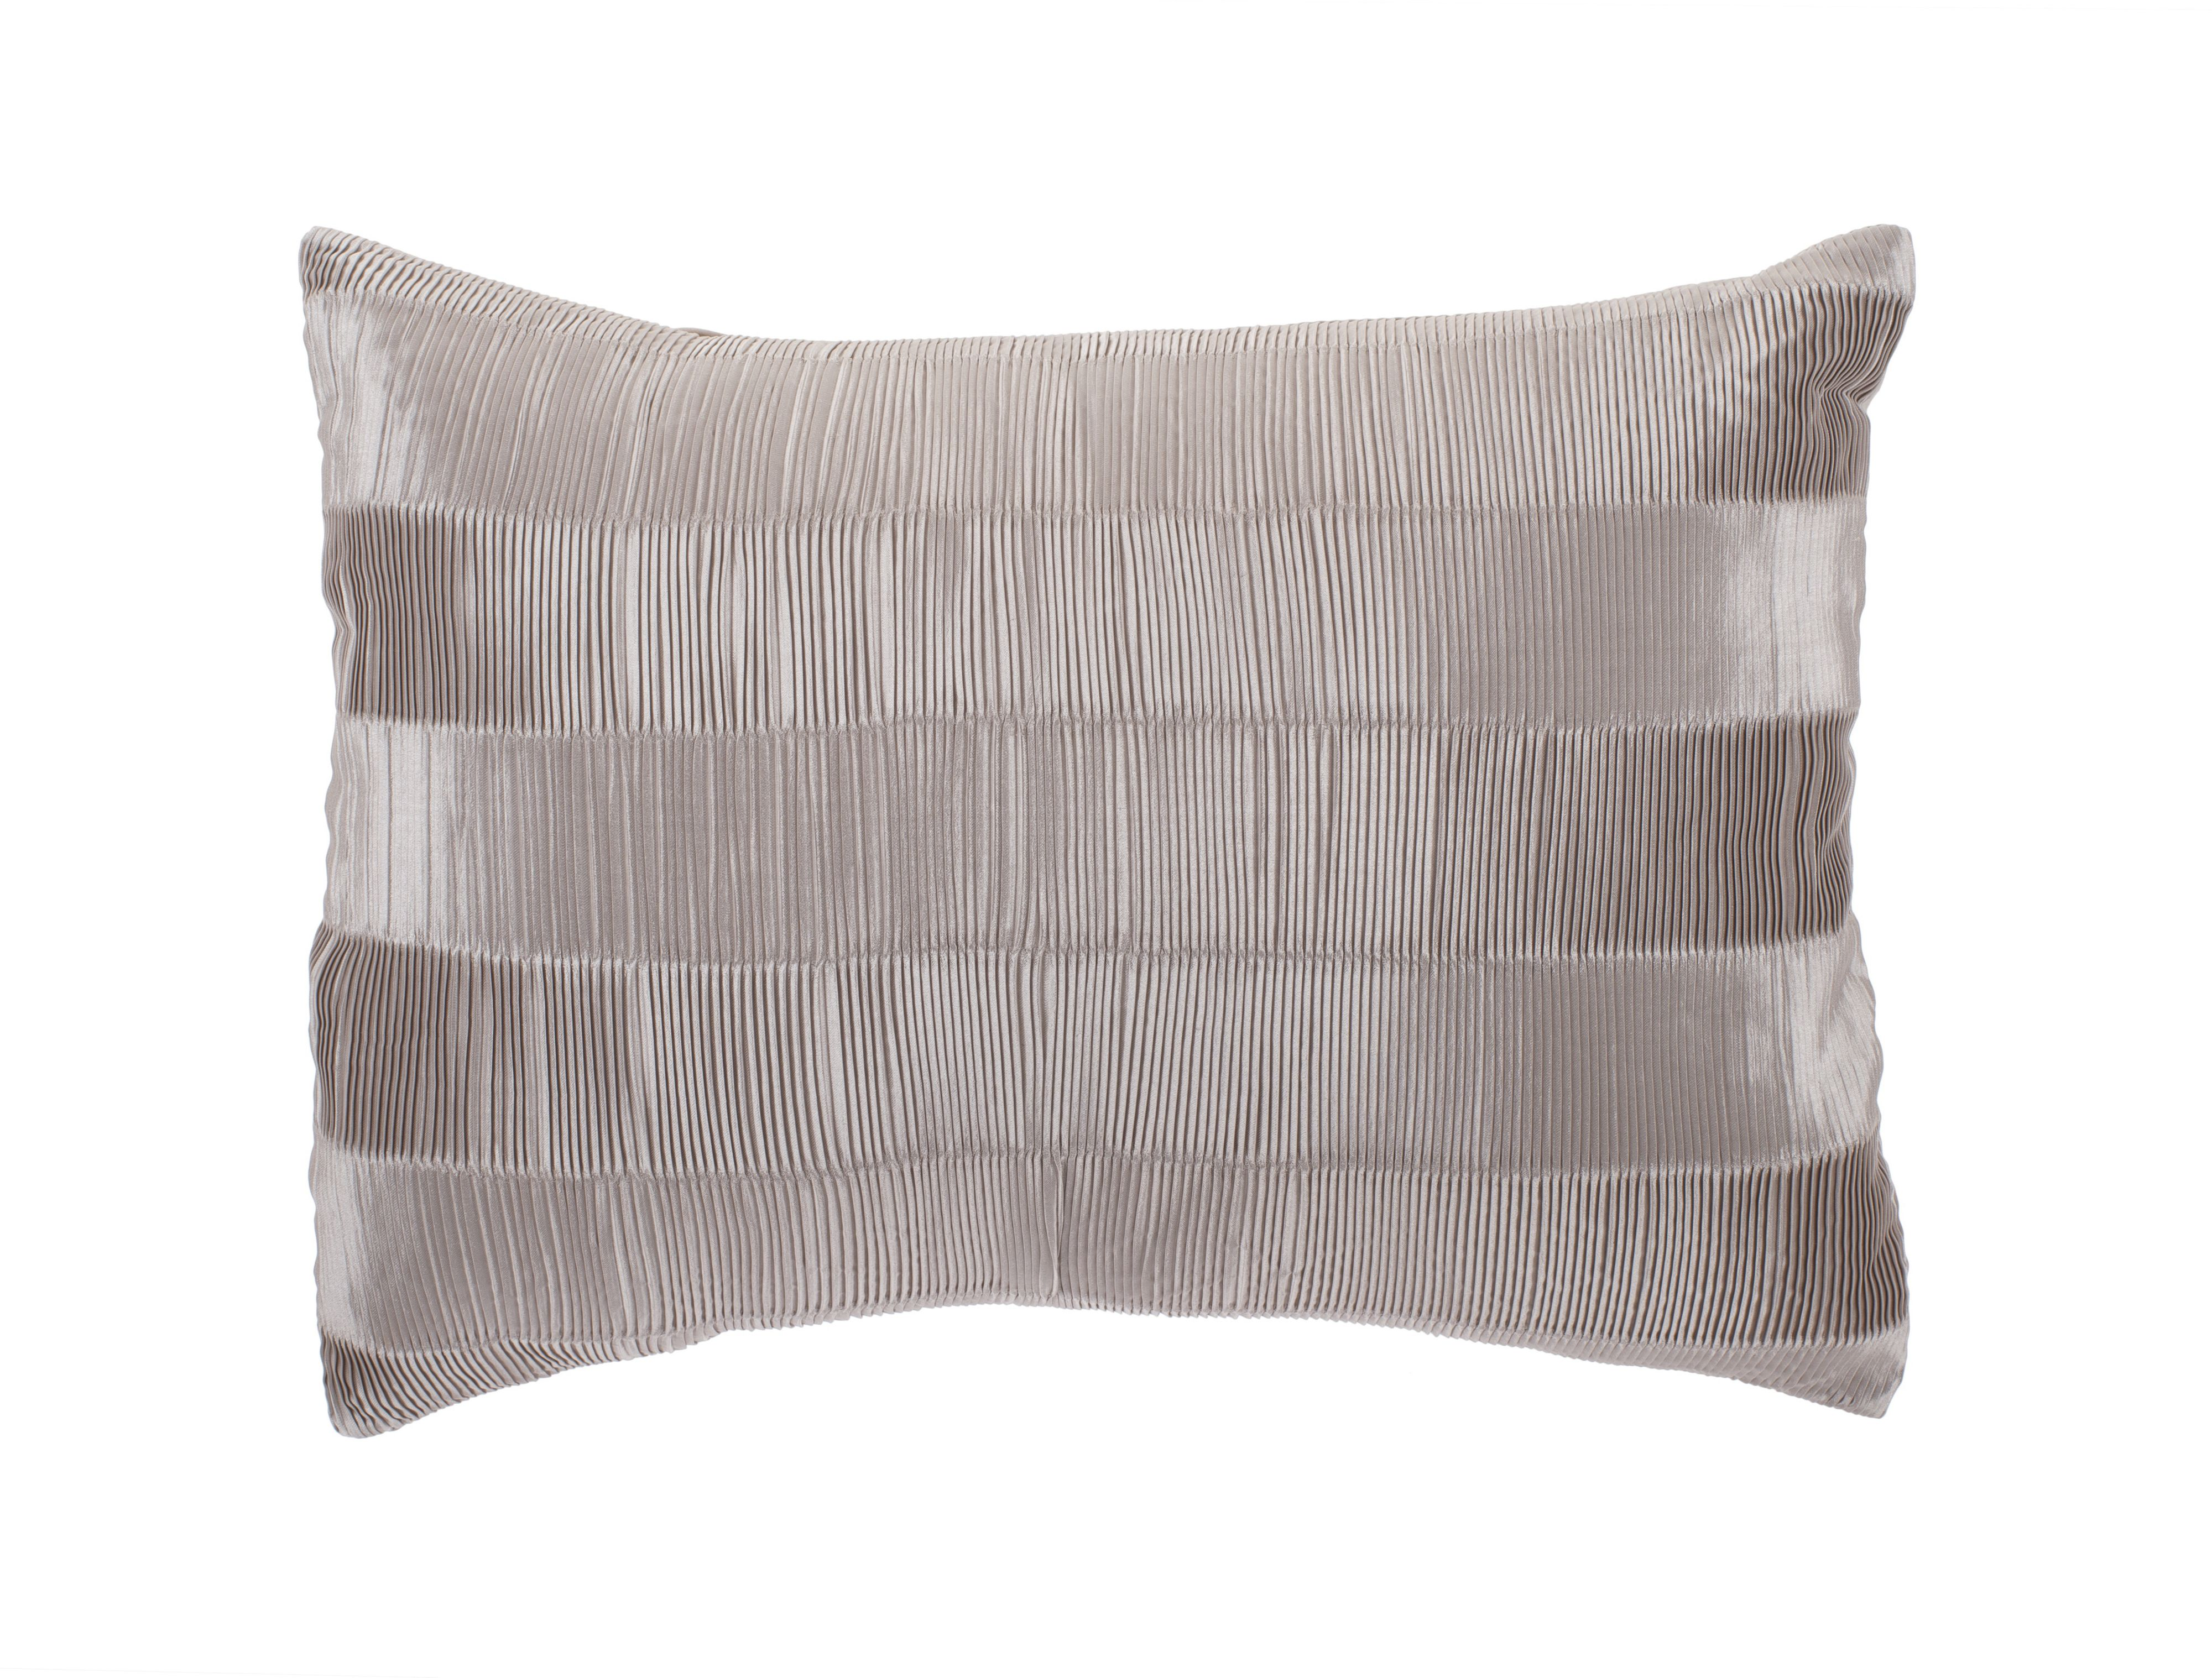 Heat pleat cushion in champagne